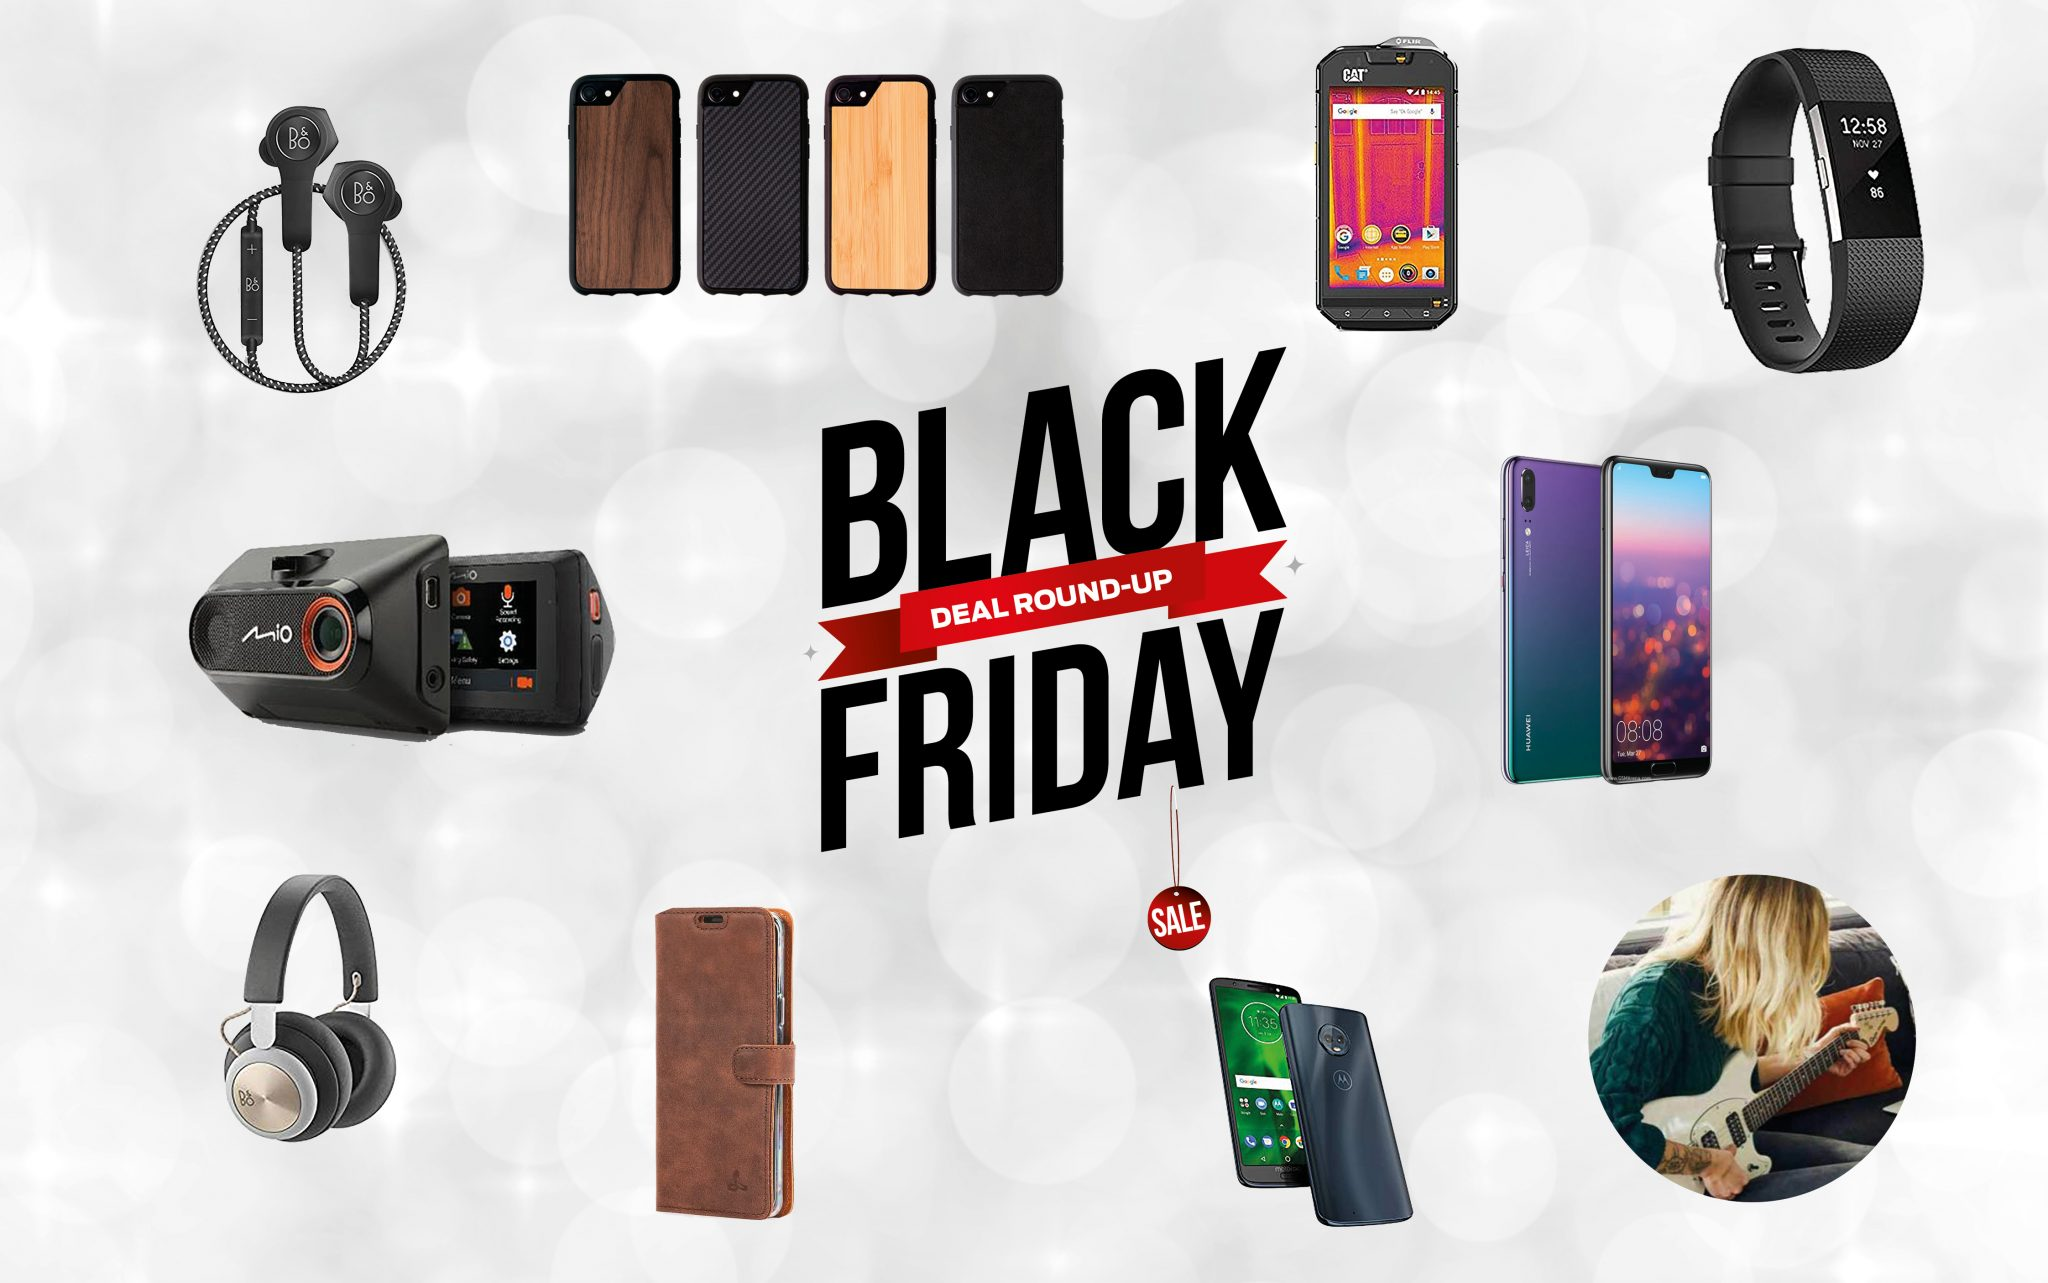 Black Friday Deal Round Up News What Mobile